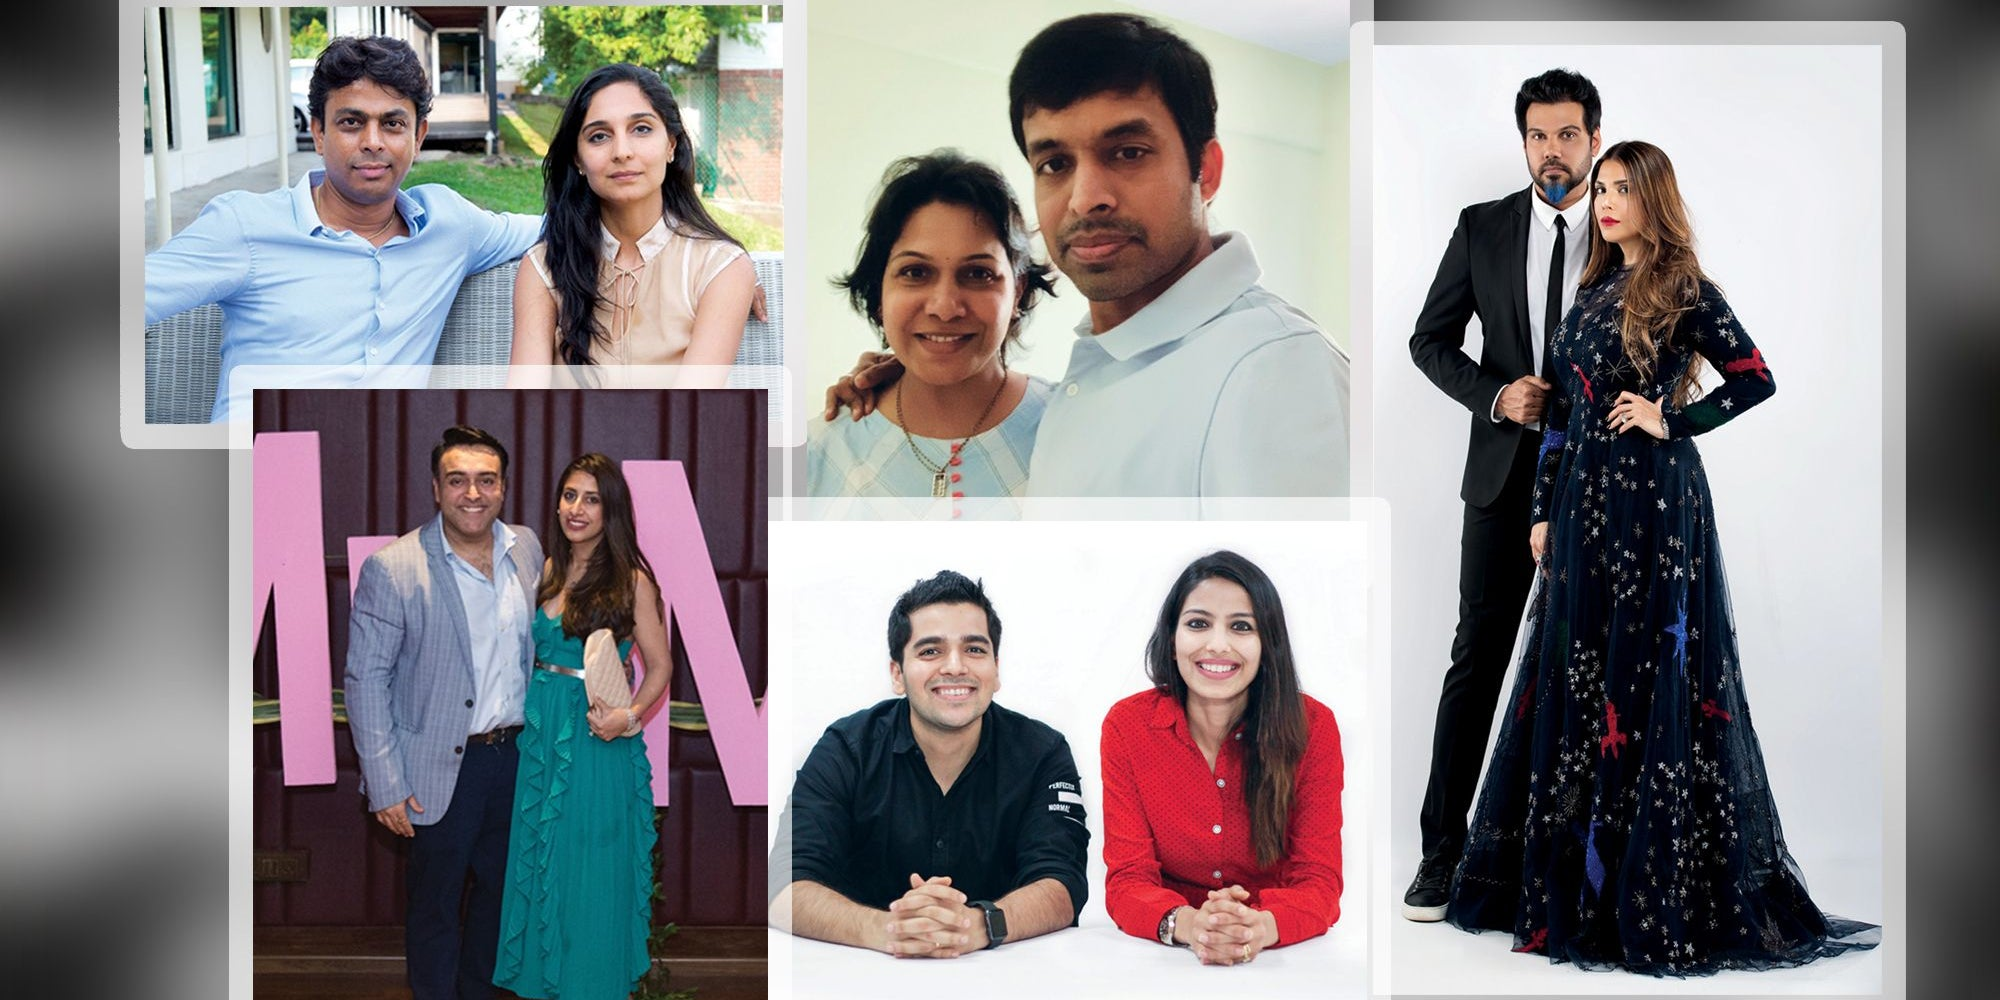 The Business of Couplepreneurs: Five Couples Share the Highs and Lows of Running a Business Together